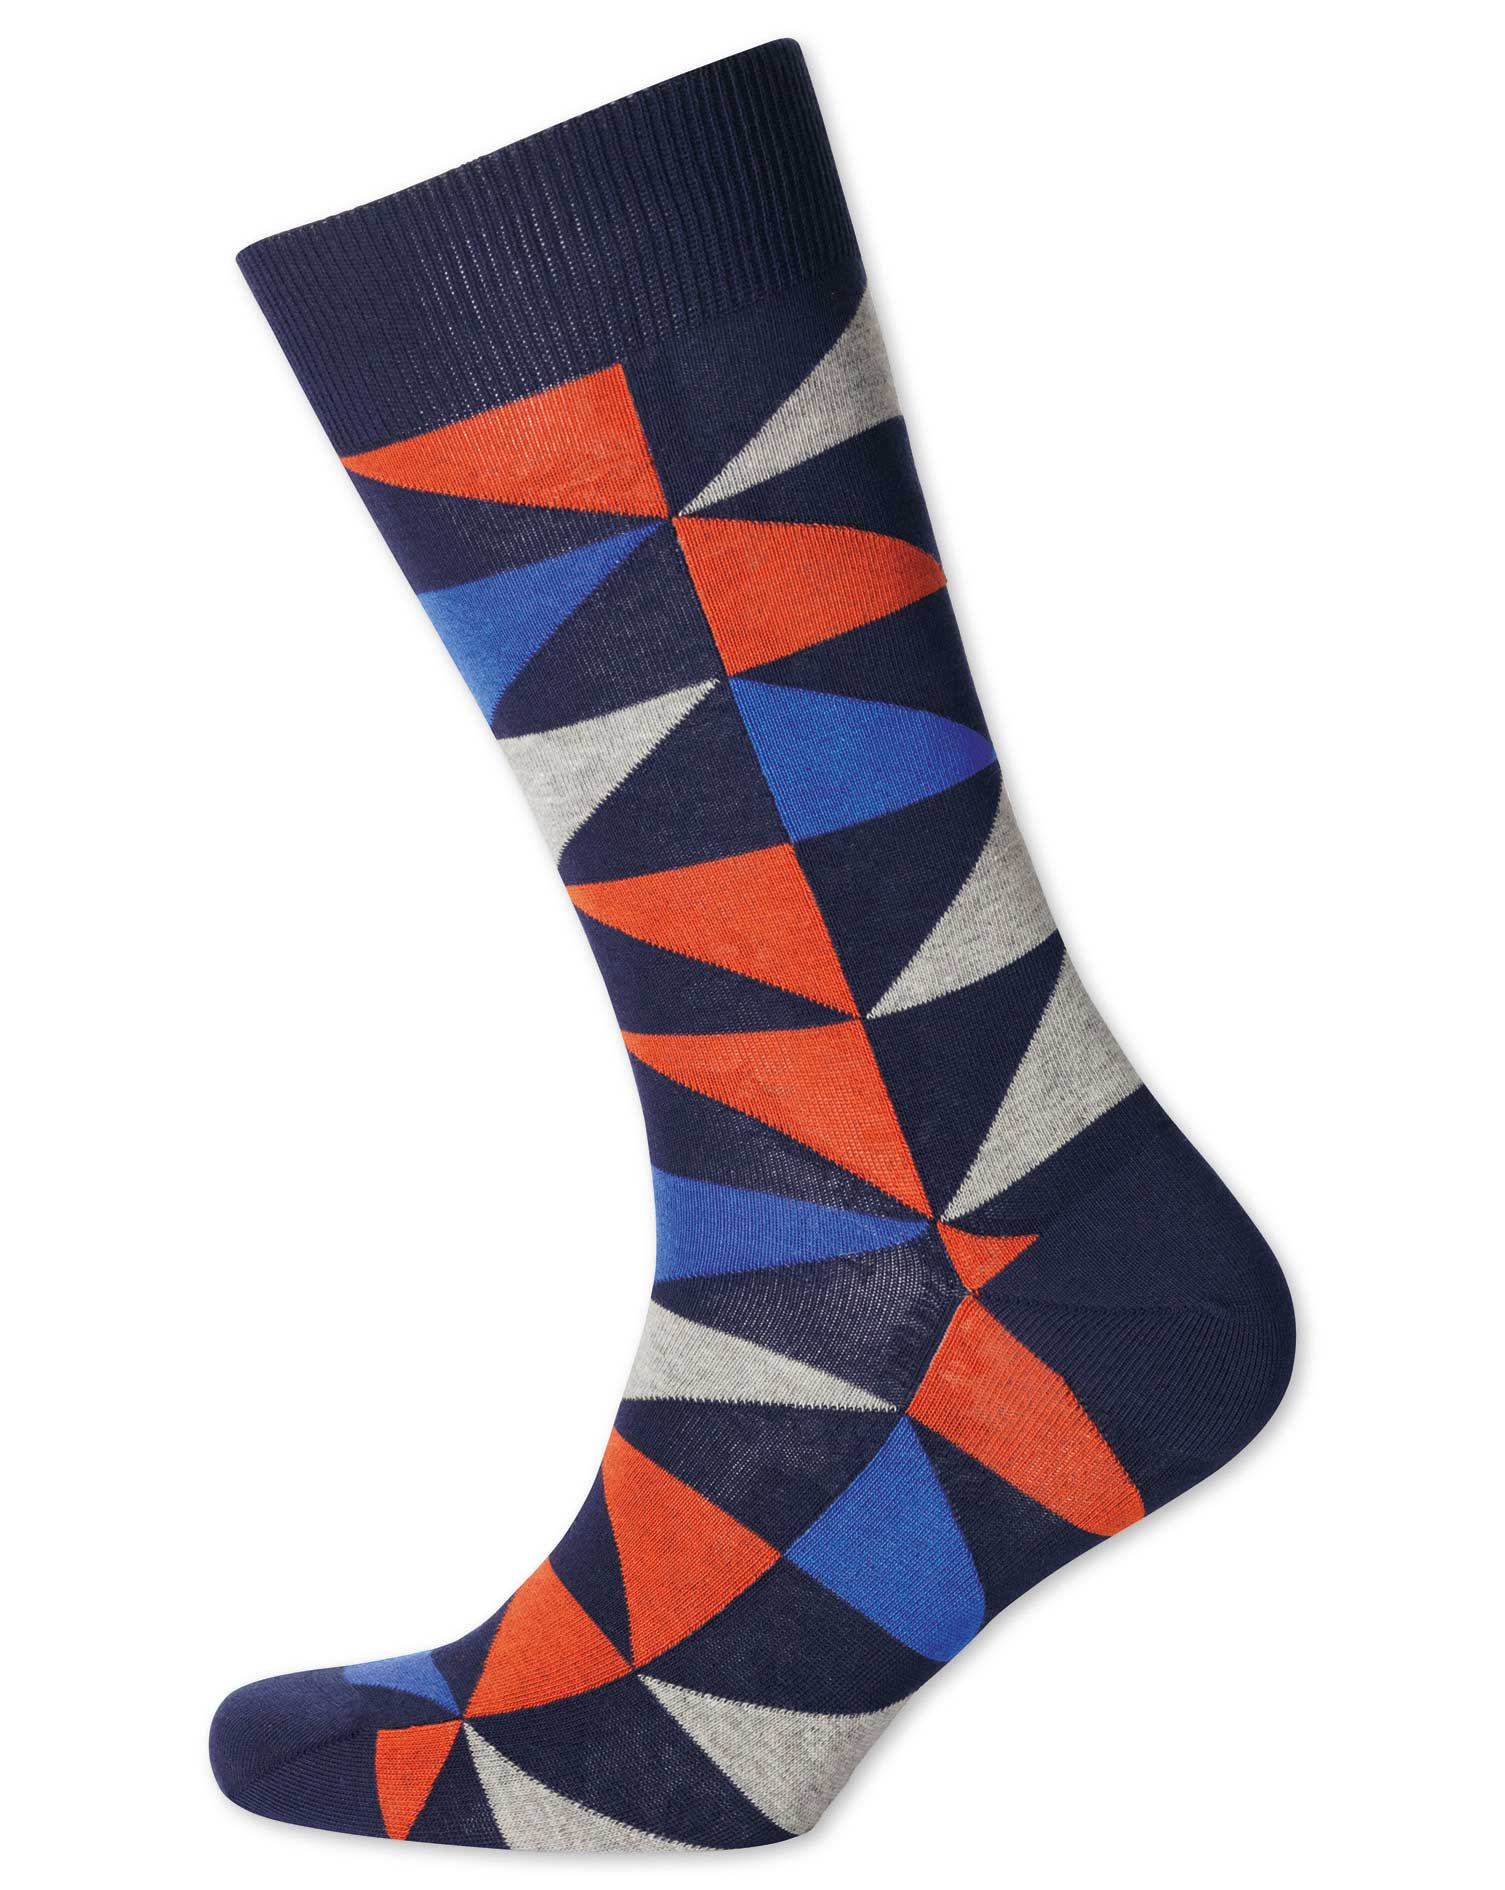 Orange and Blue Multi Triangle Socks Size Large by Charles Tyrwhitt